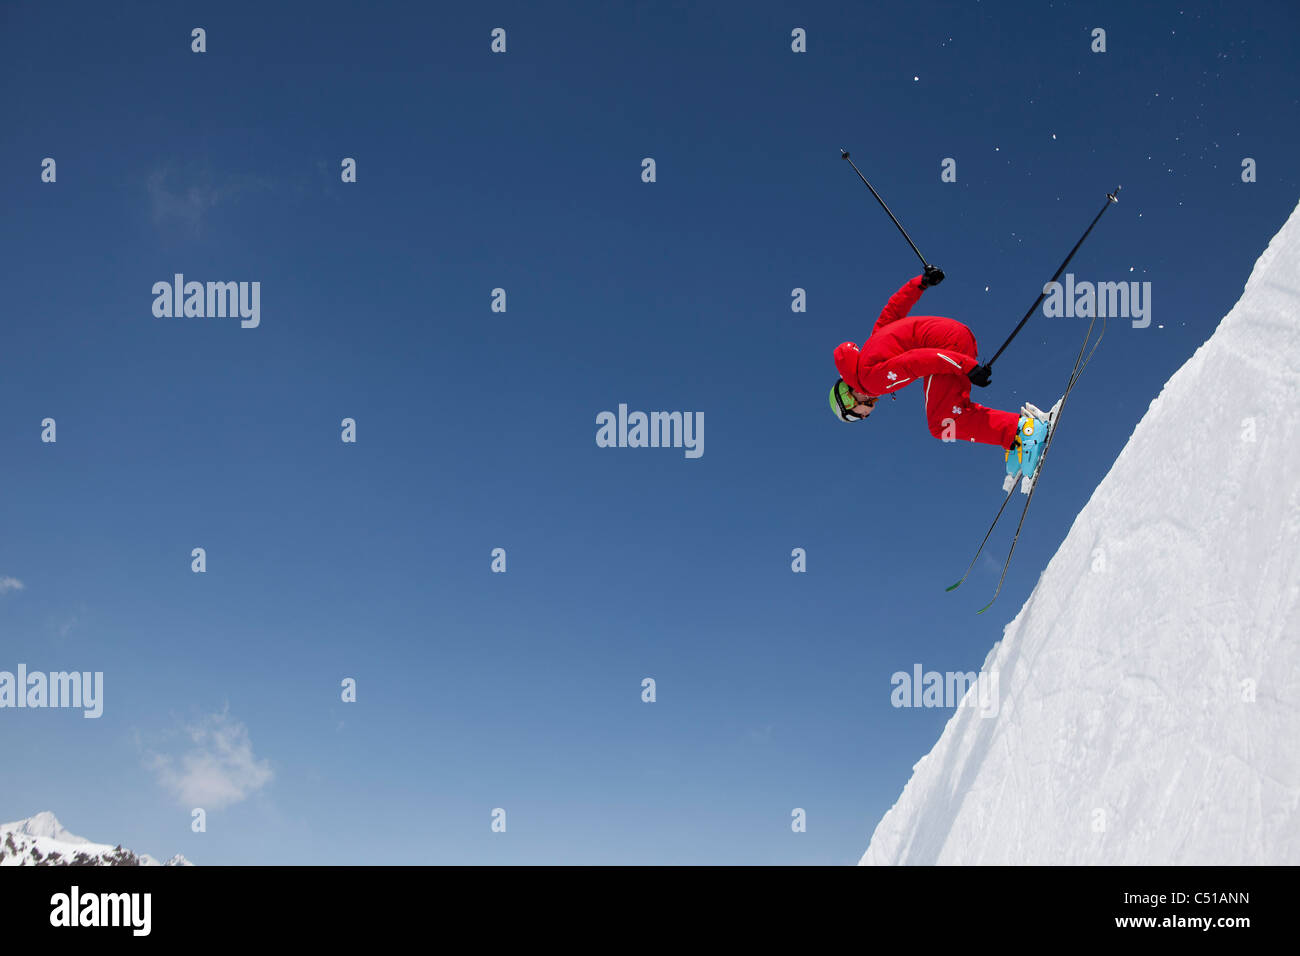 skier racing down the mountains - Stock Image